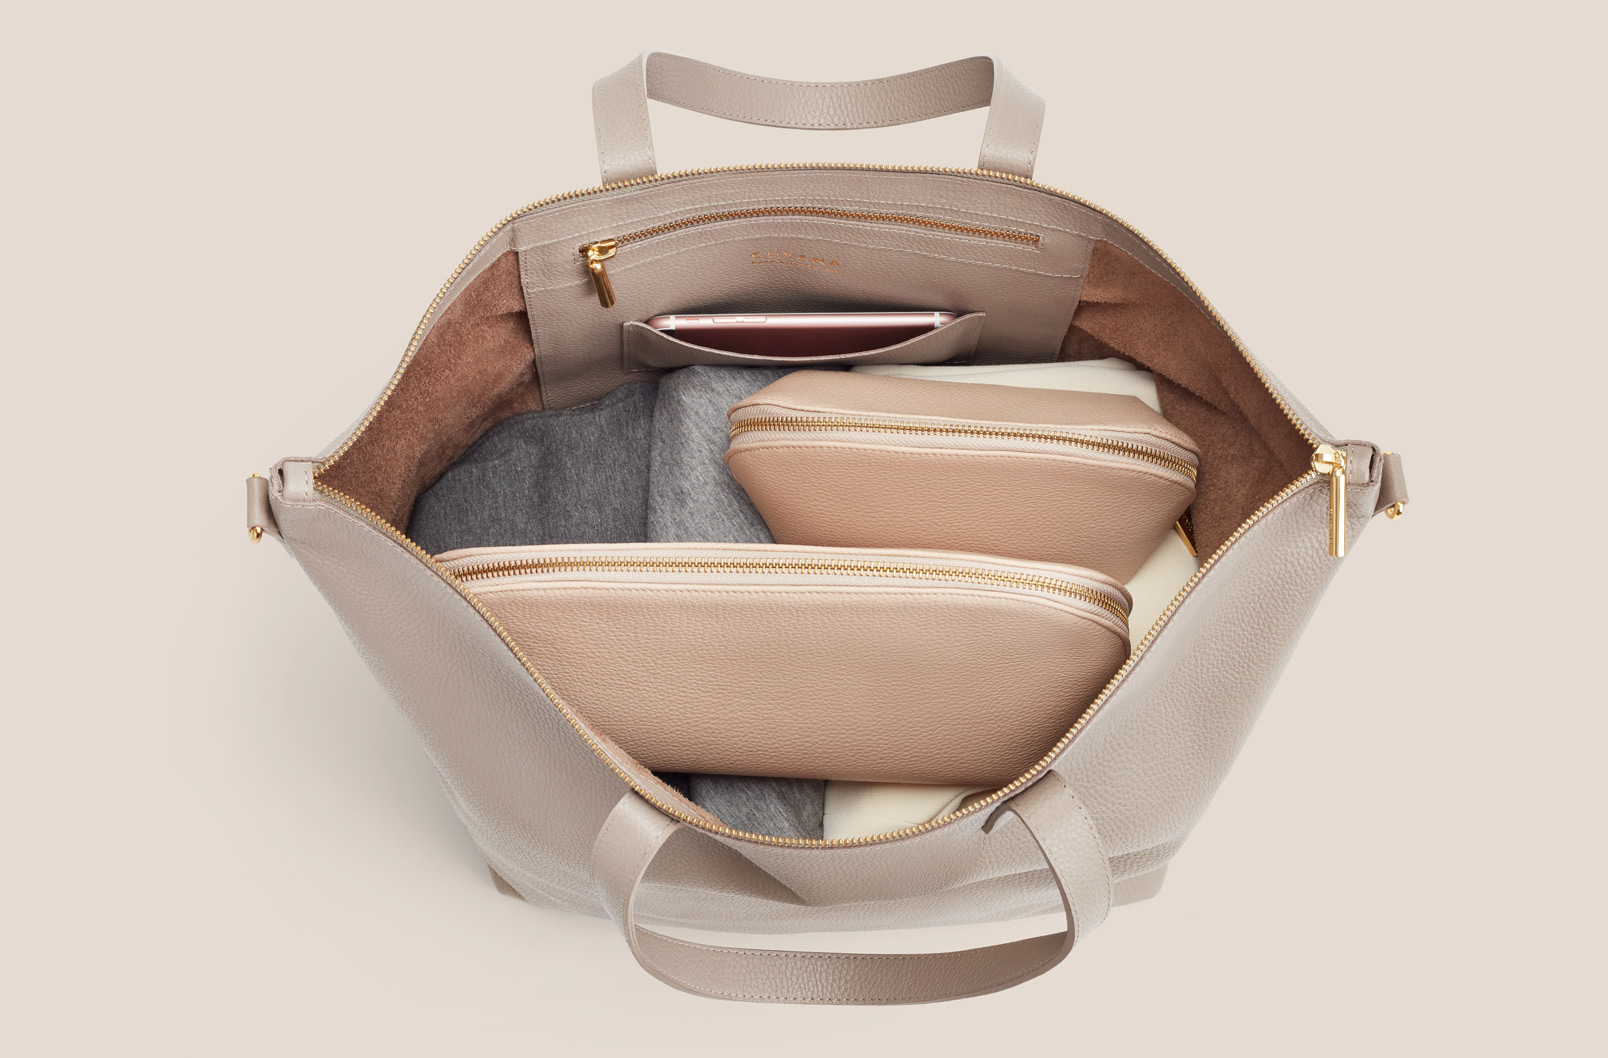 Oversized Carryall interior shot showing sweater and other items inside